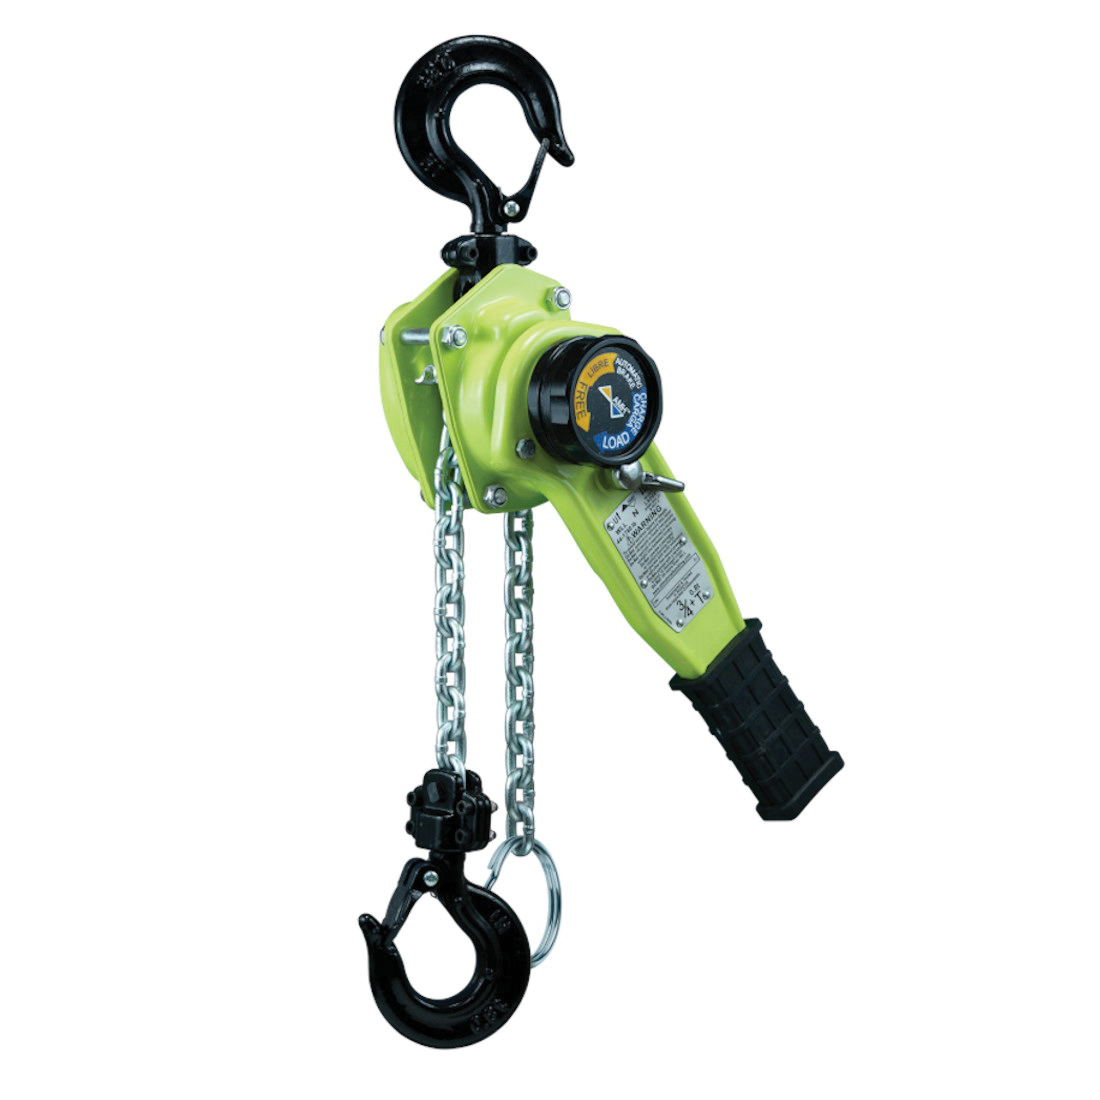 AMH™ LA008-05U 1-Part Lever Chain Hoist With Sling Hook, 1760 lb Load, 5 ft H Lifting, 47 lb Rated, 1.02 in Hook Opening